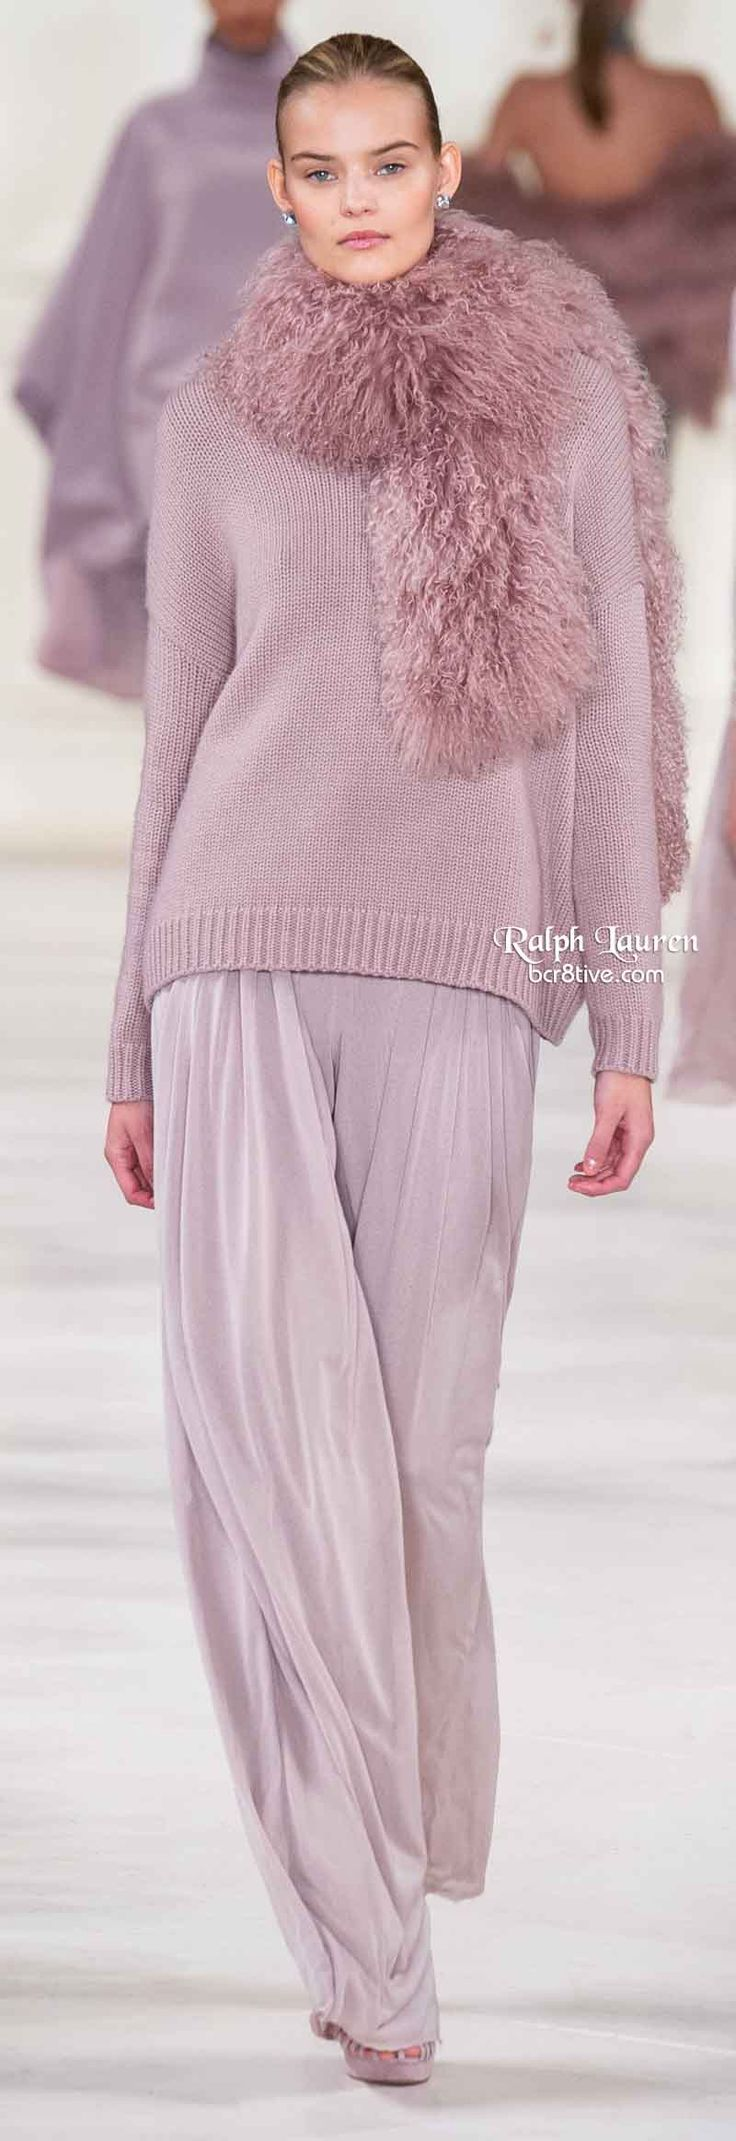 casual style taken up a few levels --Ralph Lauren Fall 2014: sumptuous colors, fabrics and styles - love!  YUMMY, KATHY